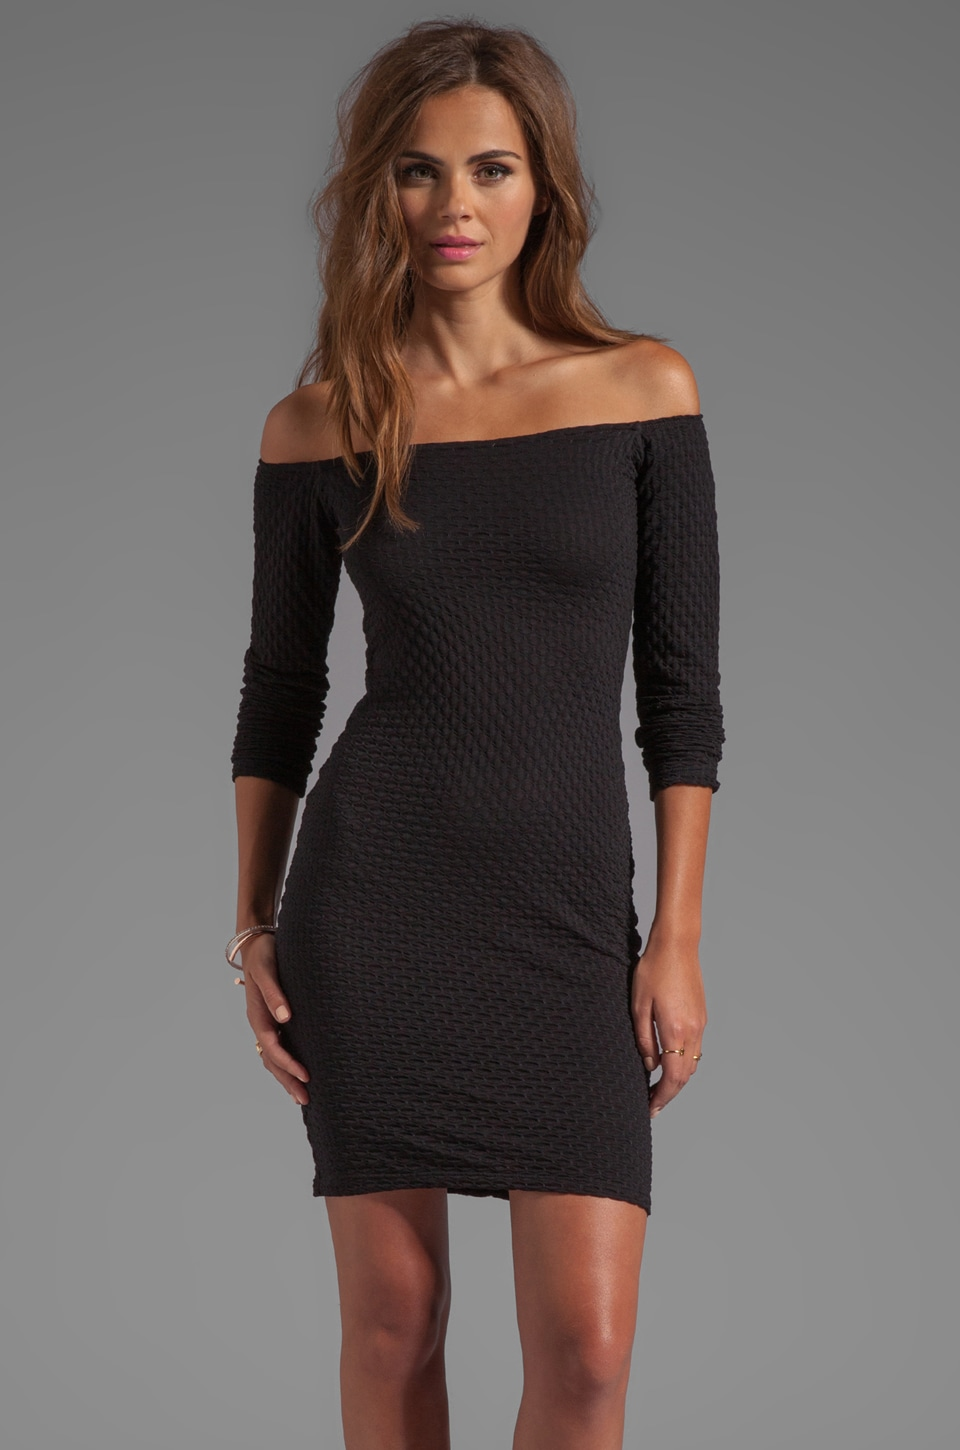 Motel Deborah Dress in Black Waffle